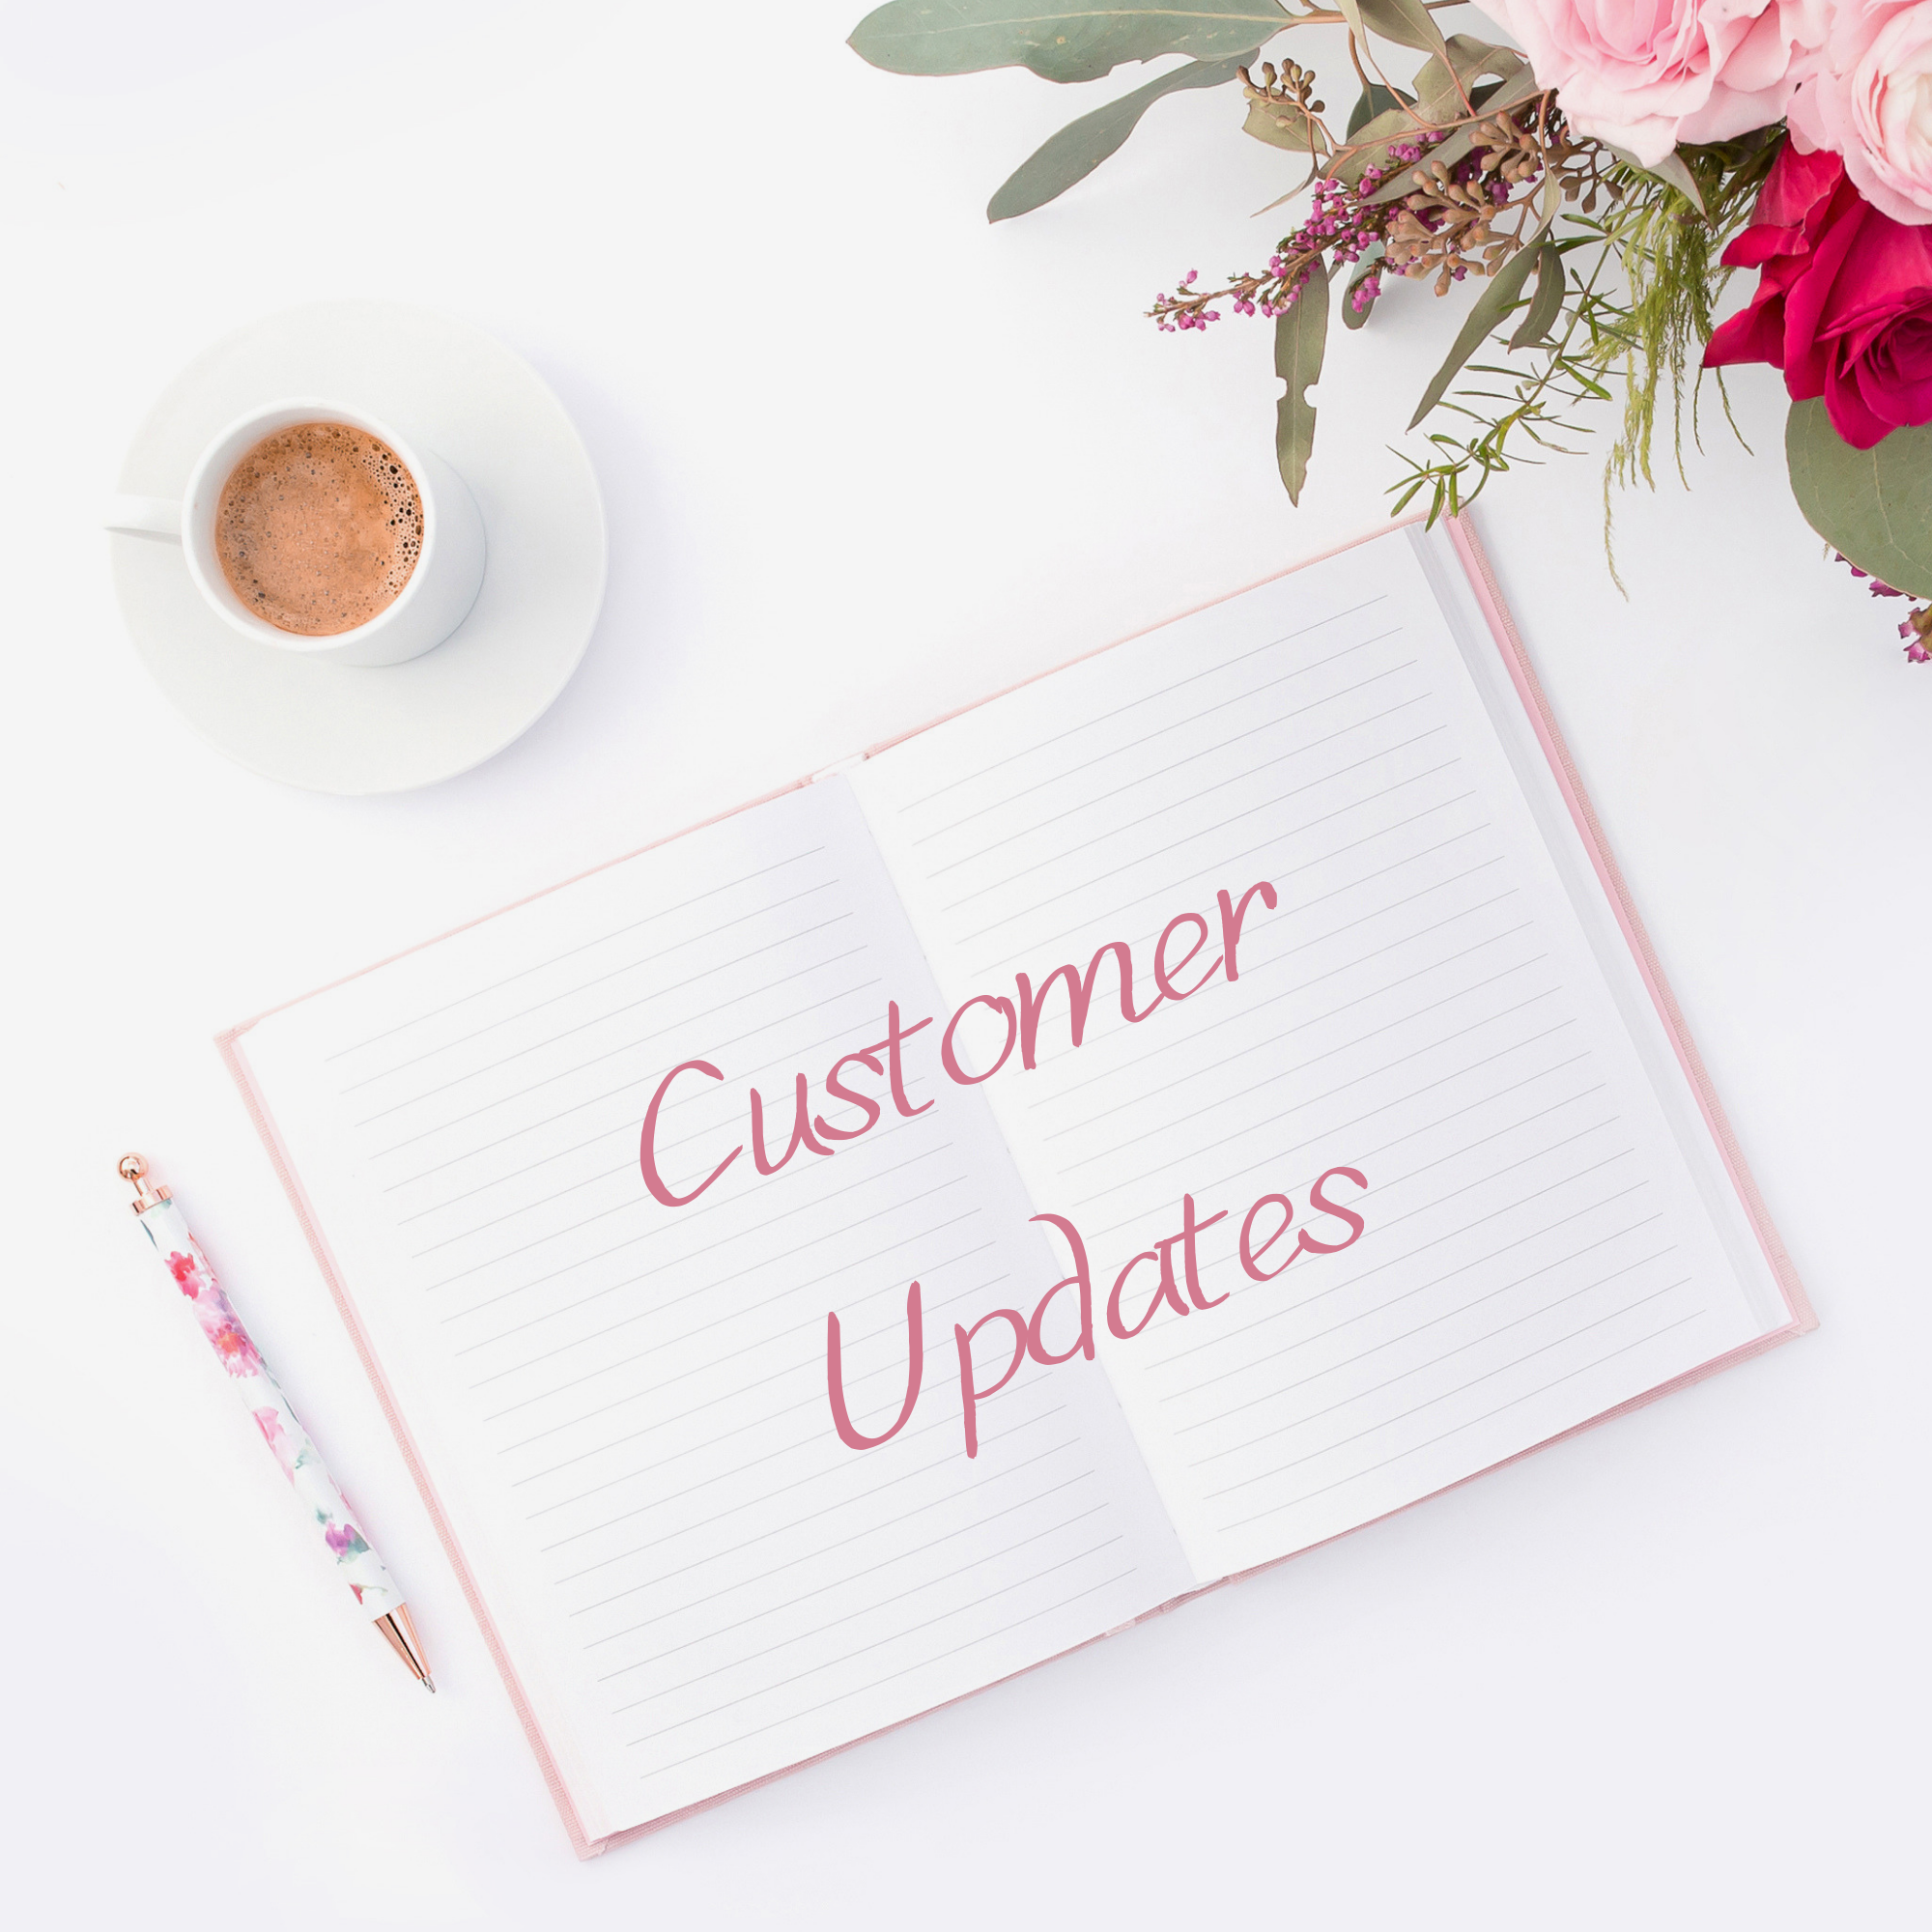 Updates to customers to inform on the progress of the order